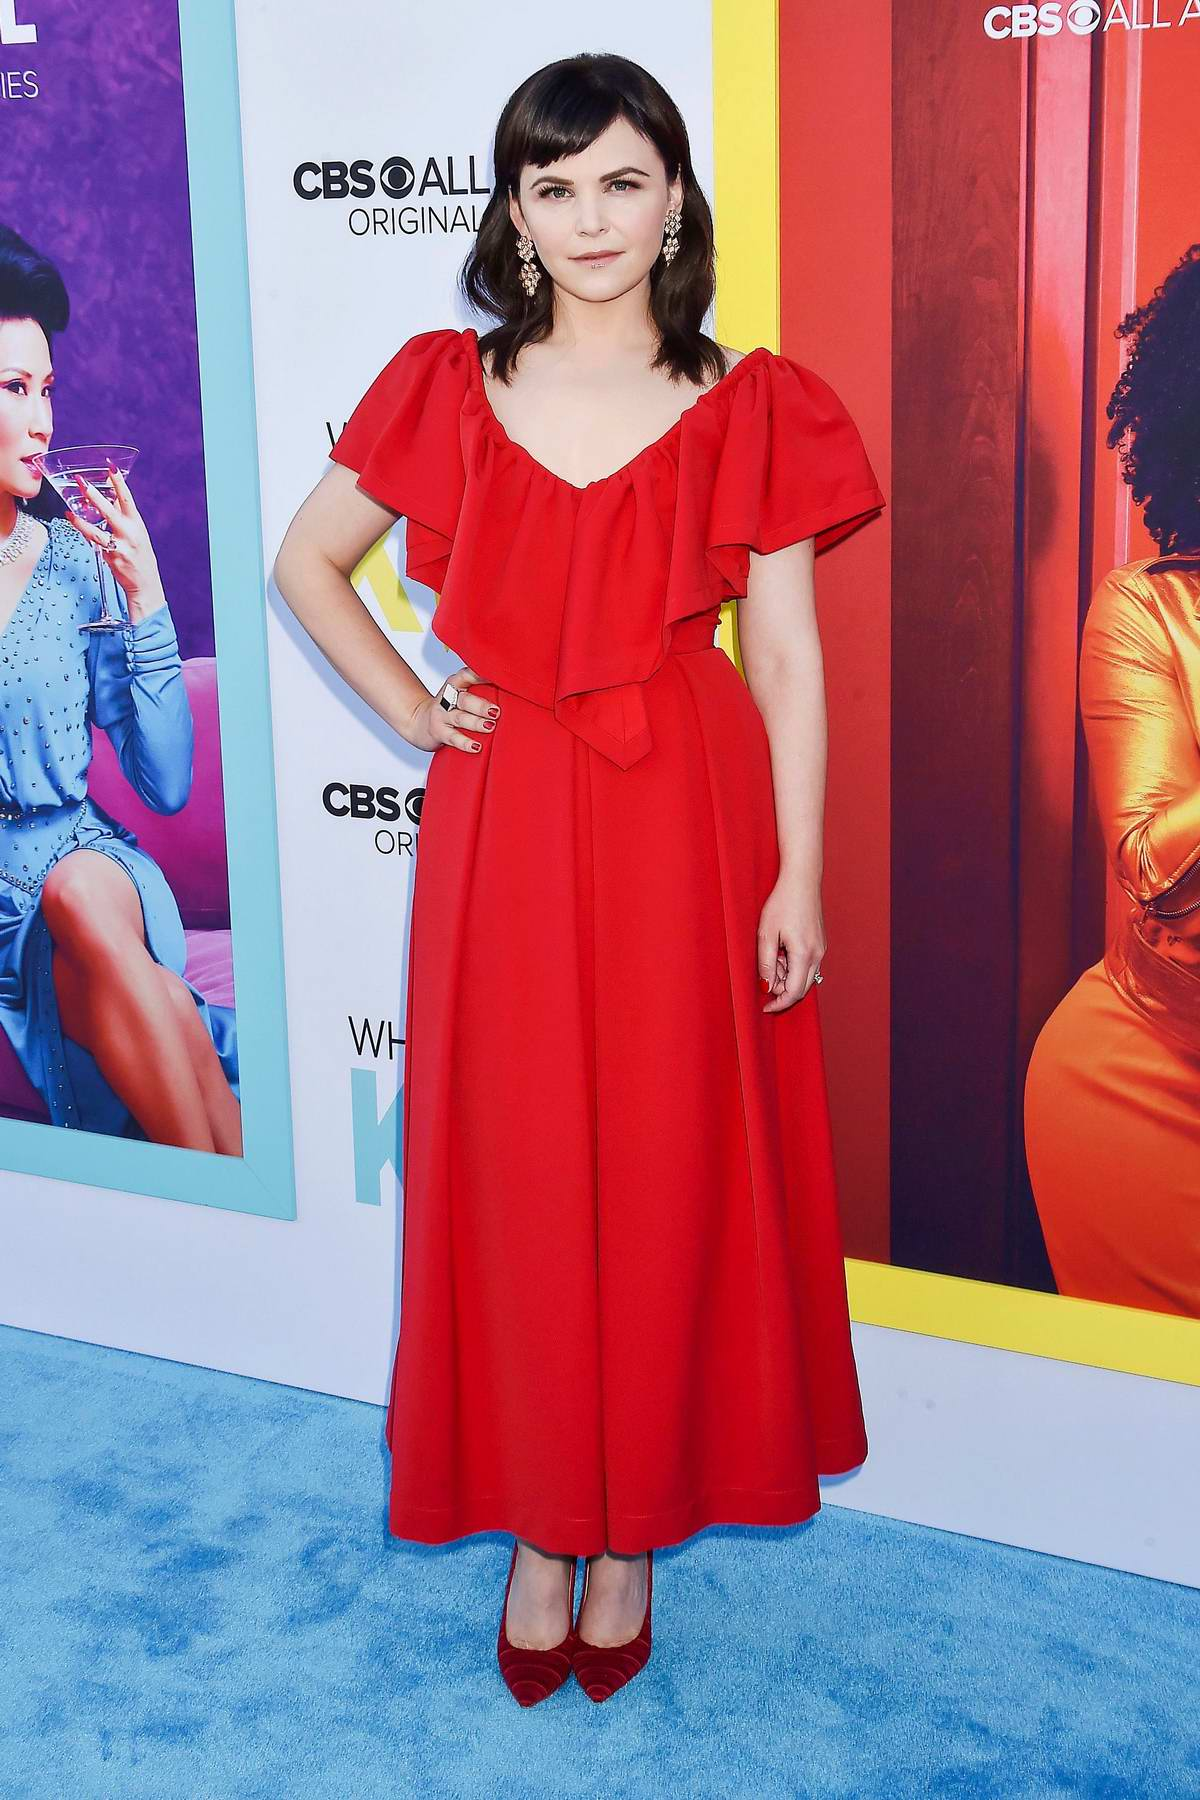 Ginnifer Goodwin attends the Premiere of 'Why Women Kill' at Wallis Annenberg Center in Los Angeles